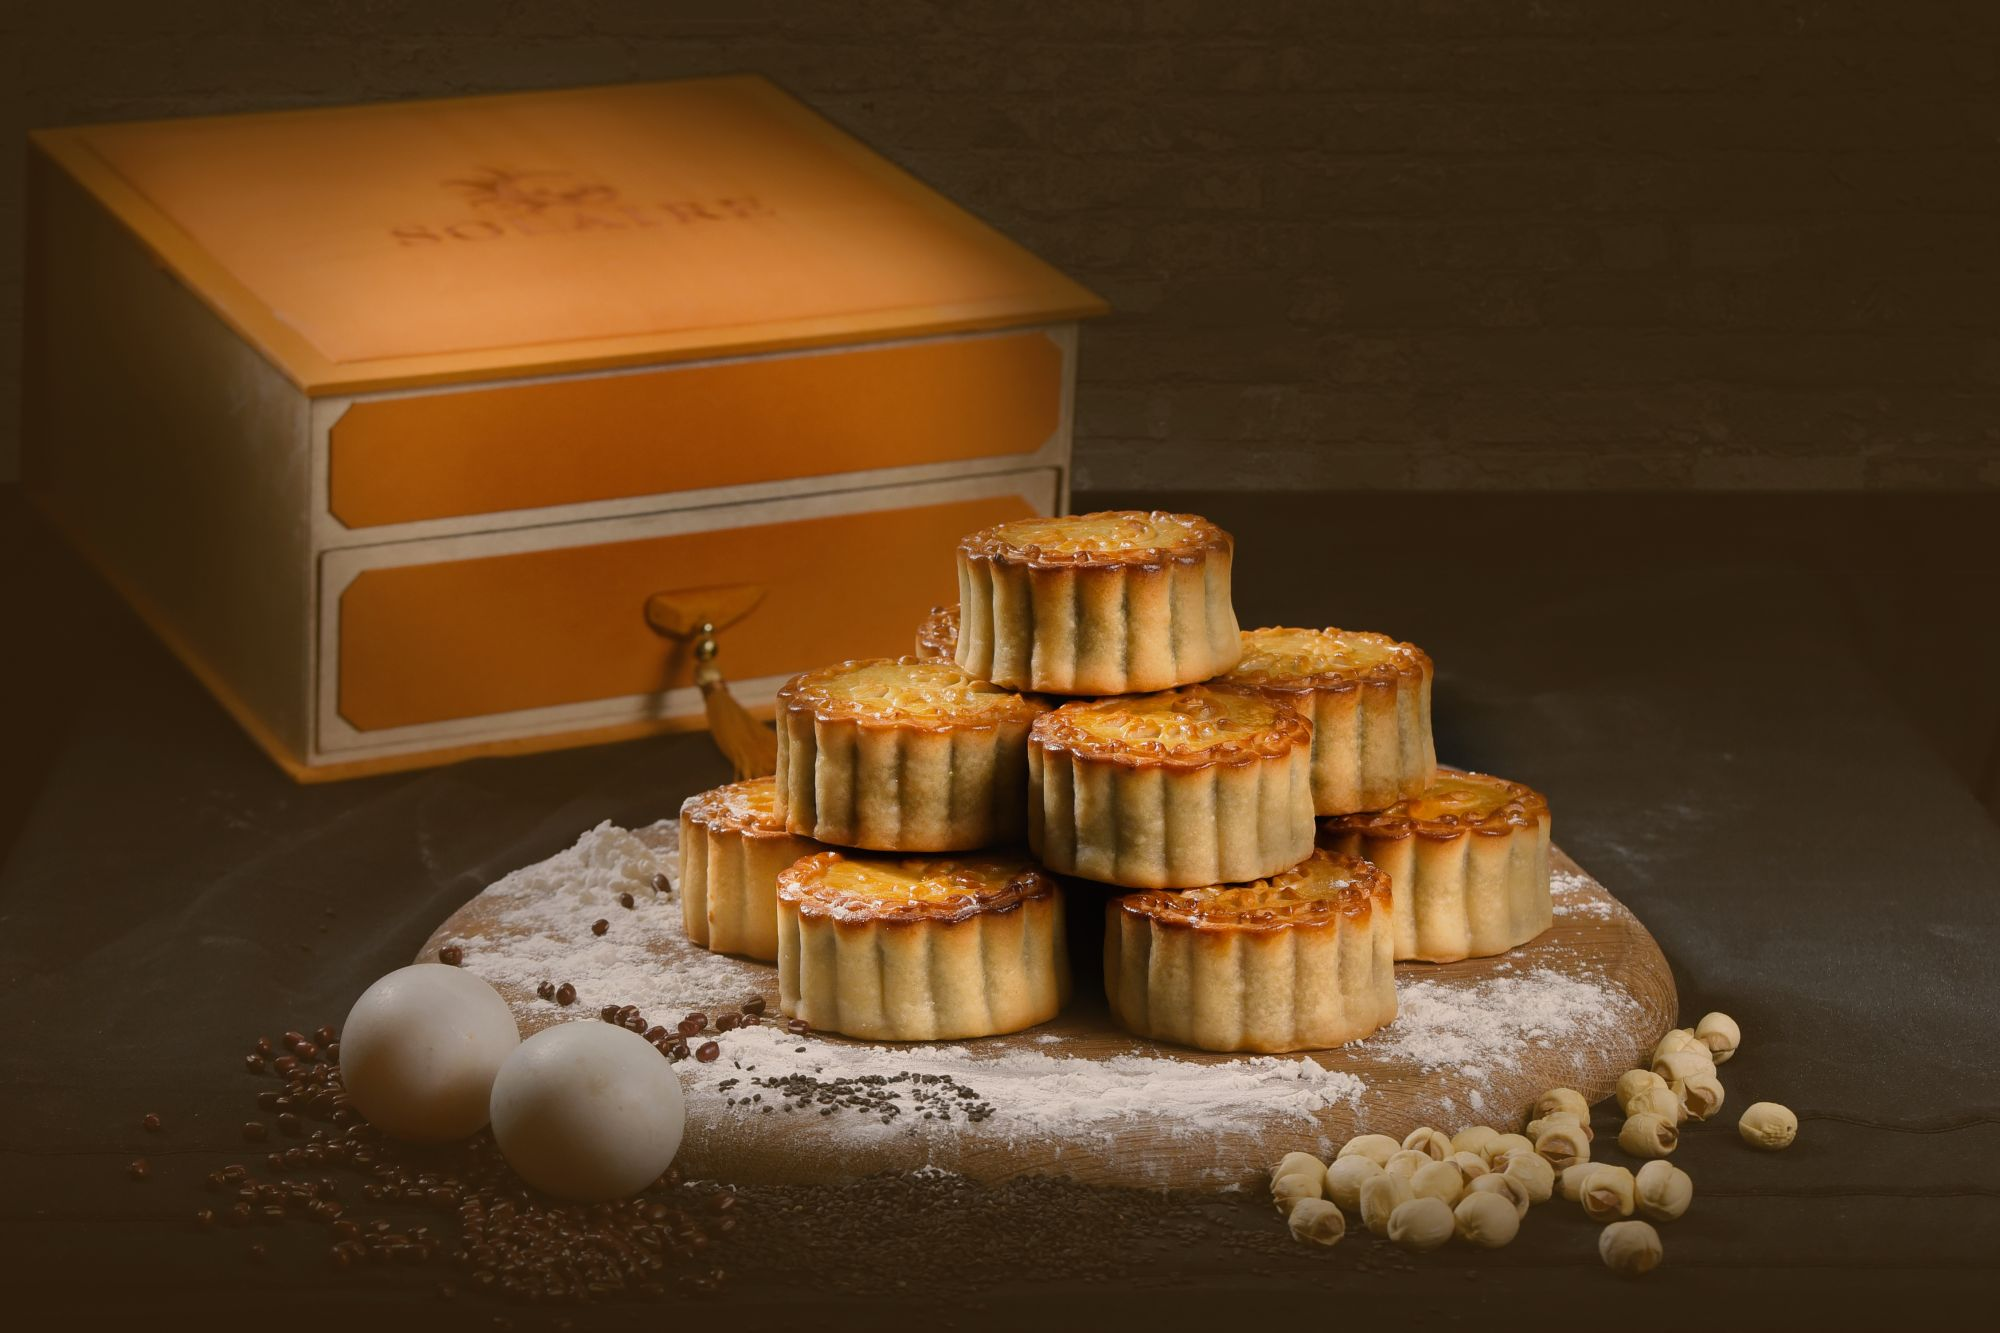 Solaire Celebrates The Mid-Autumn Festival With Special Homemade Mooncakes